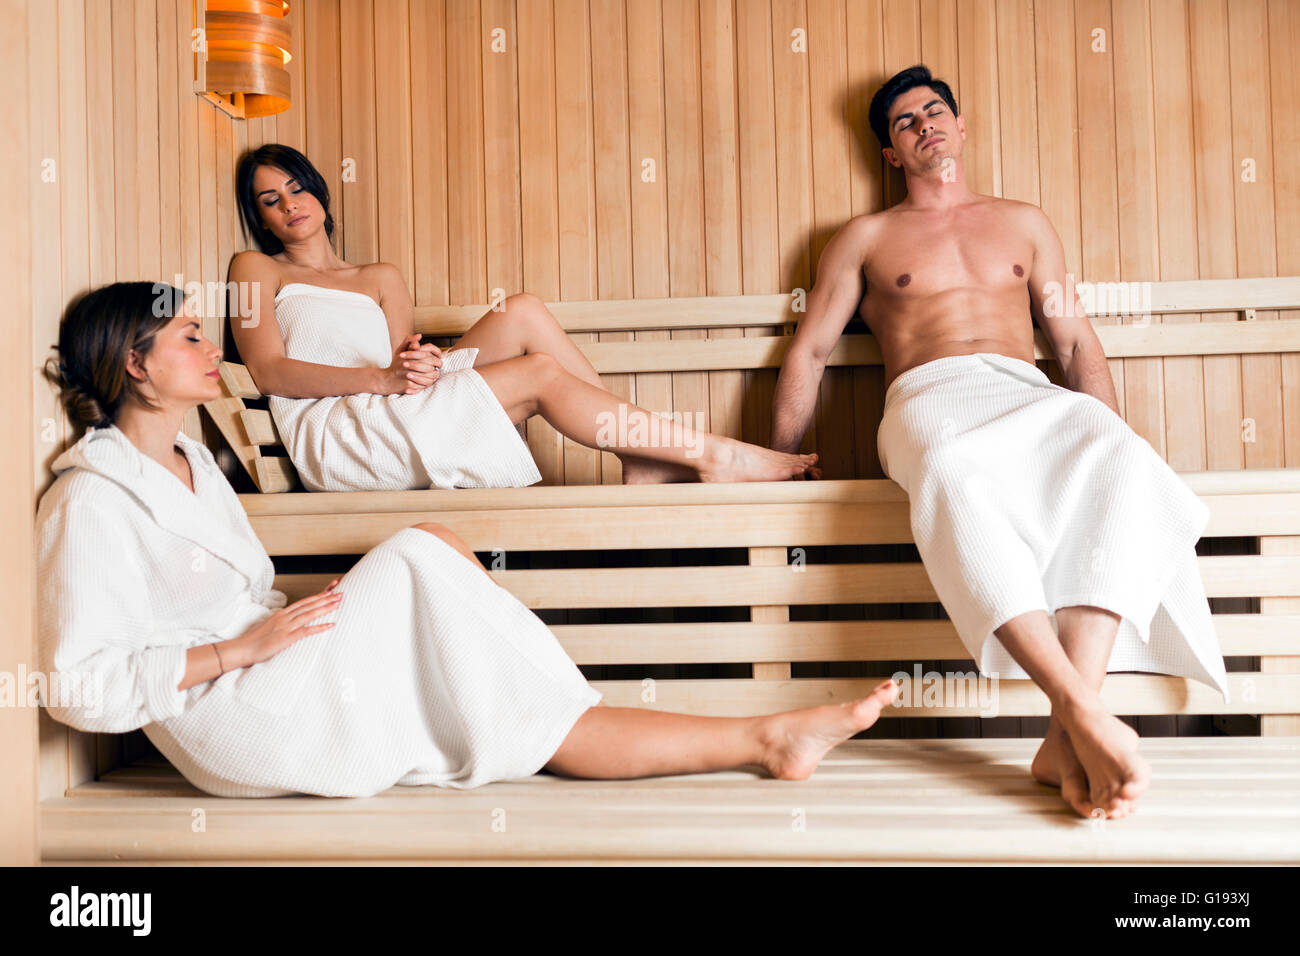 Group of young healthy, fit and beautiful people relaxing in a sauna - Stock Image